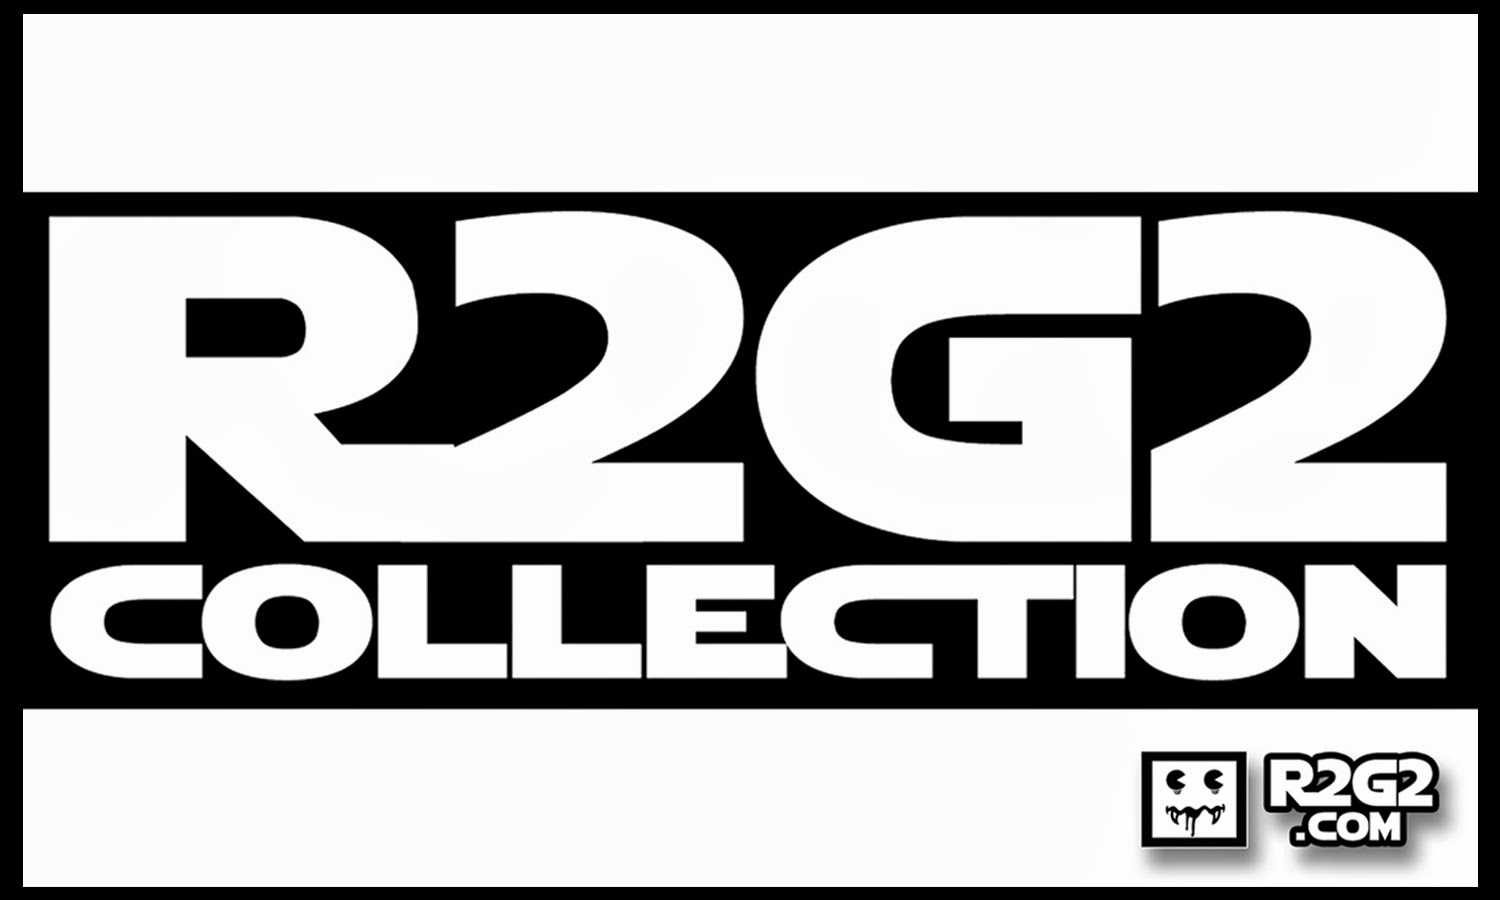 R2g2 Collection March